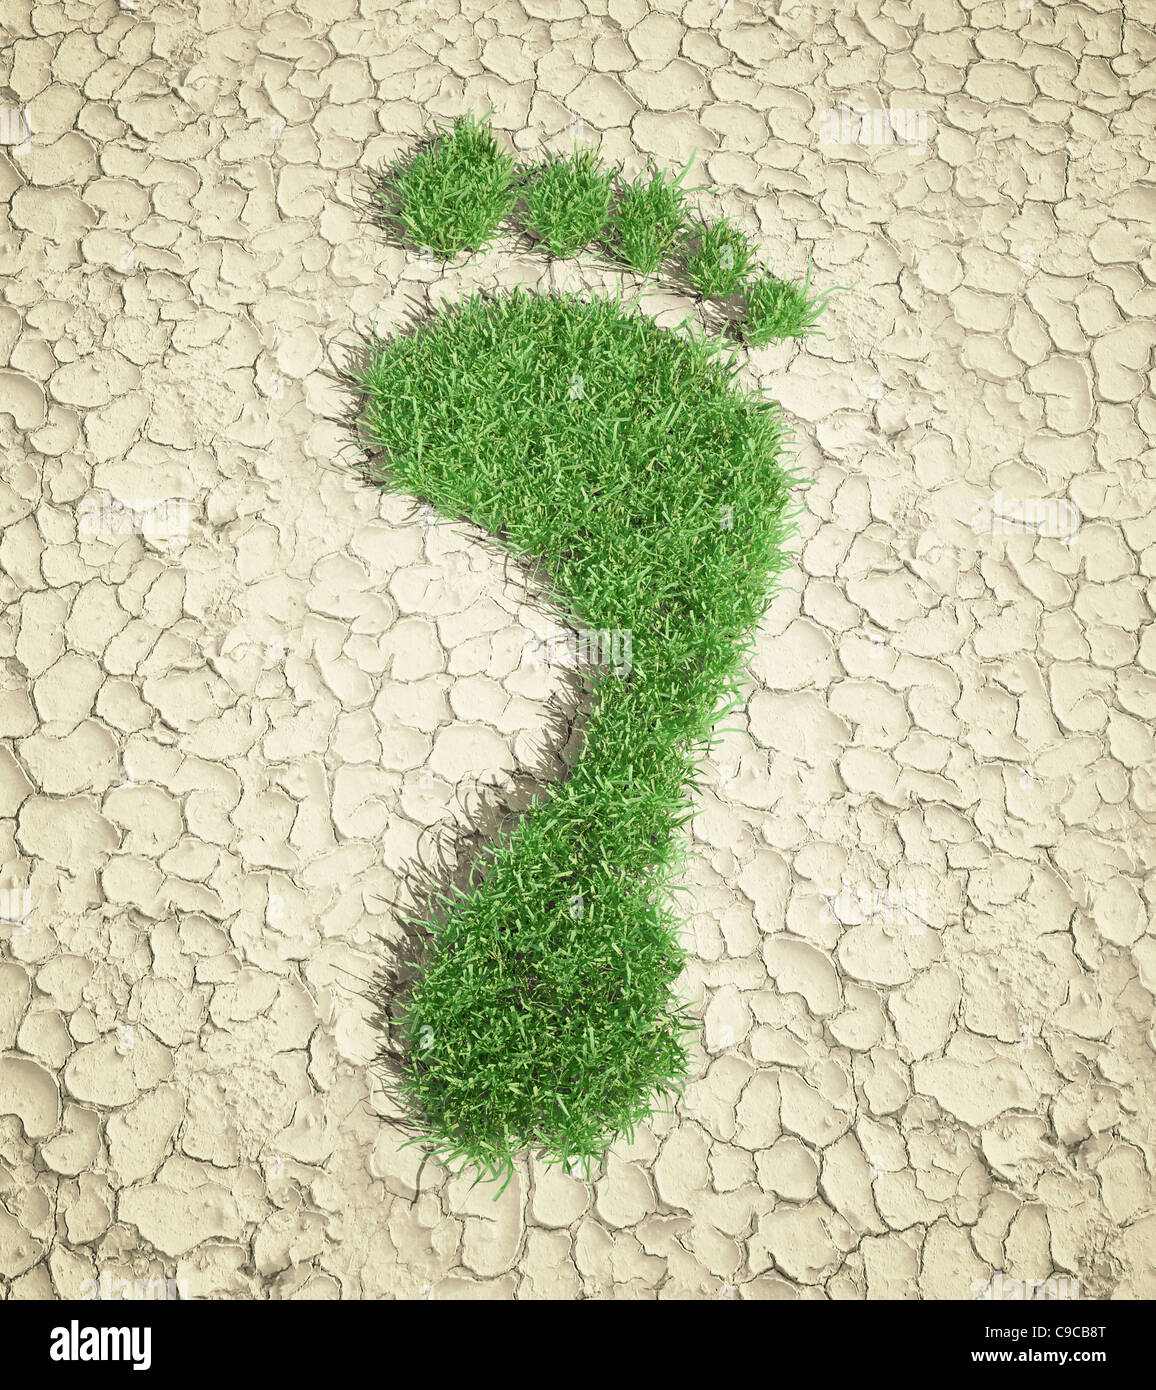 Ecological footprint concept illustration - grass patch footprint - Stock Image